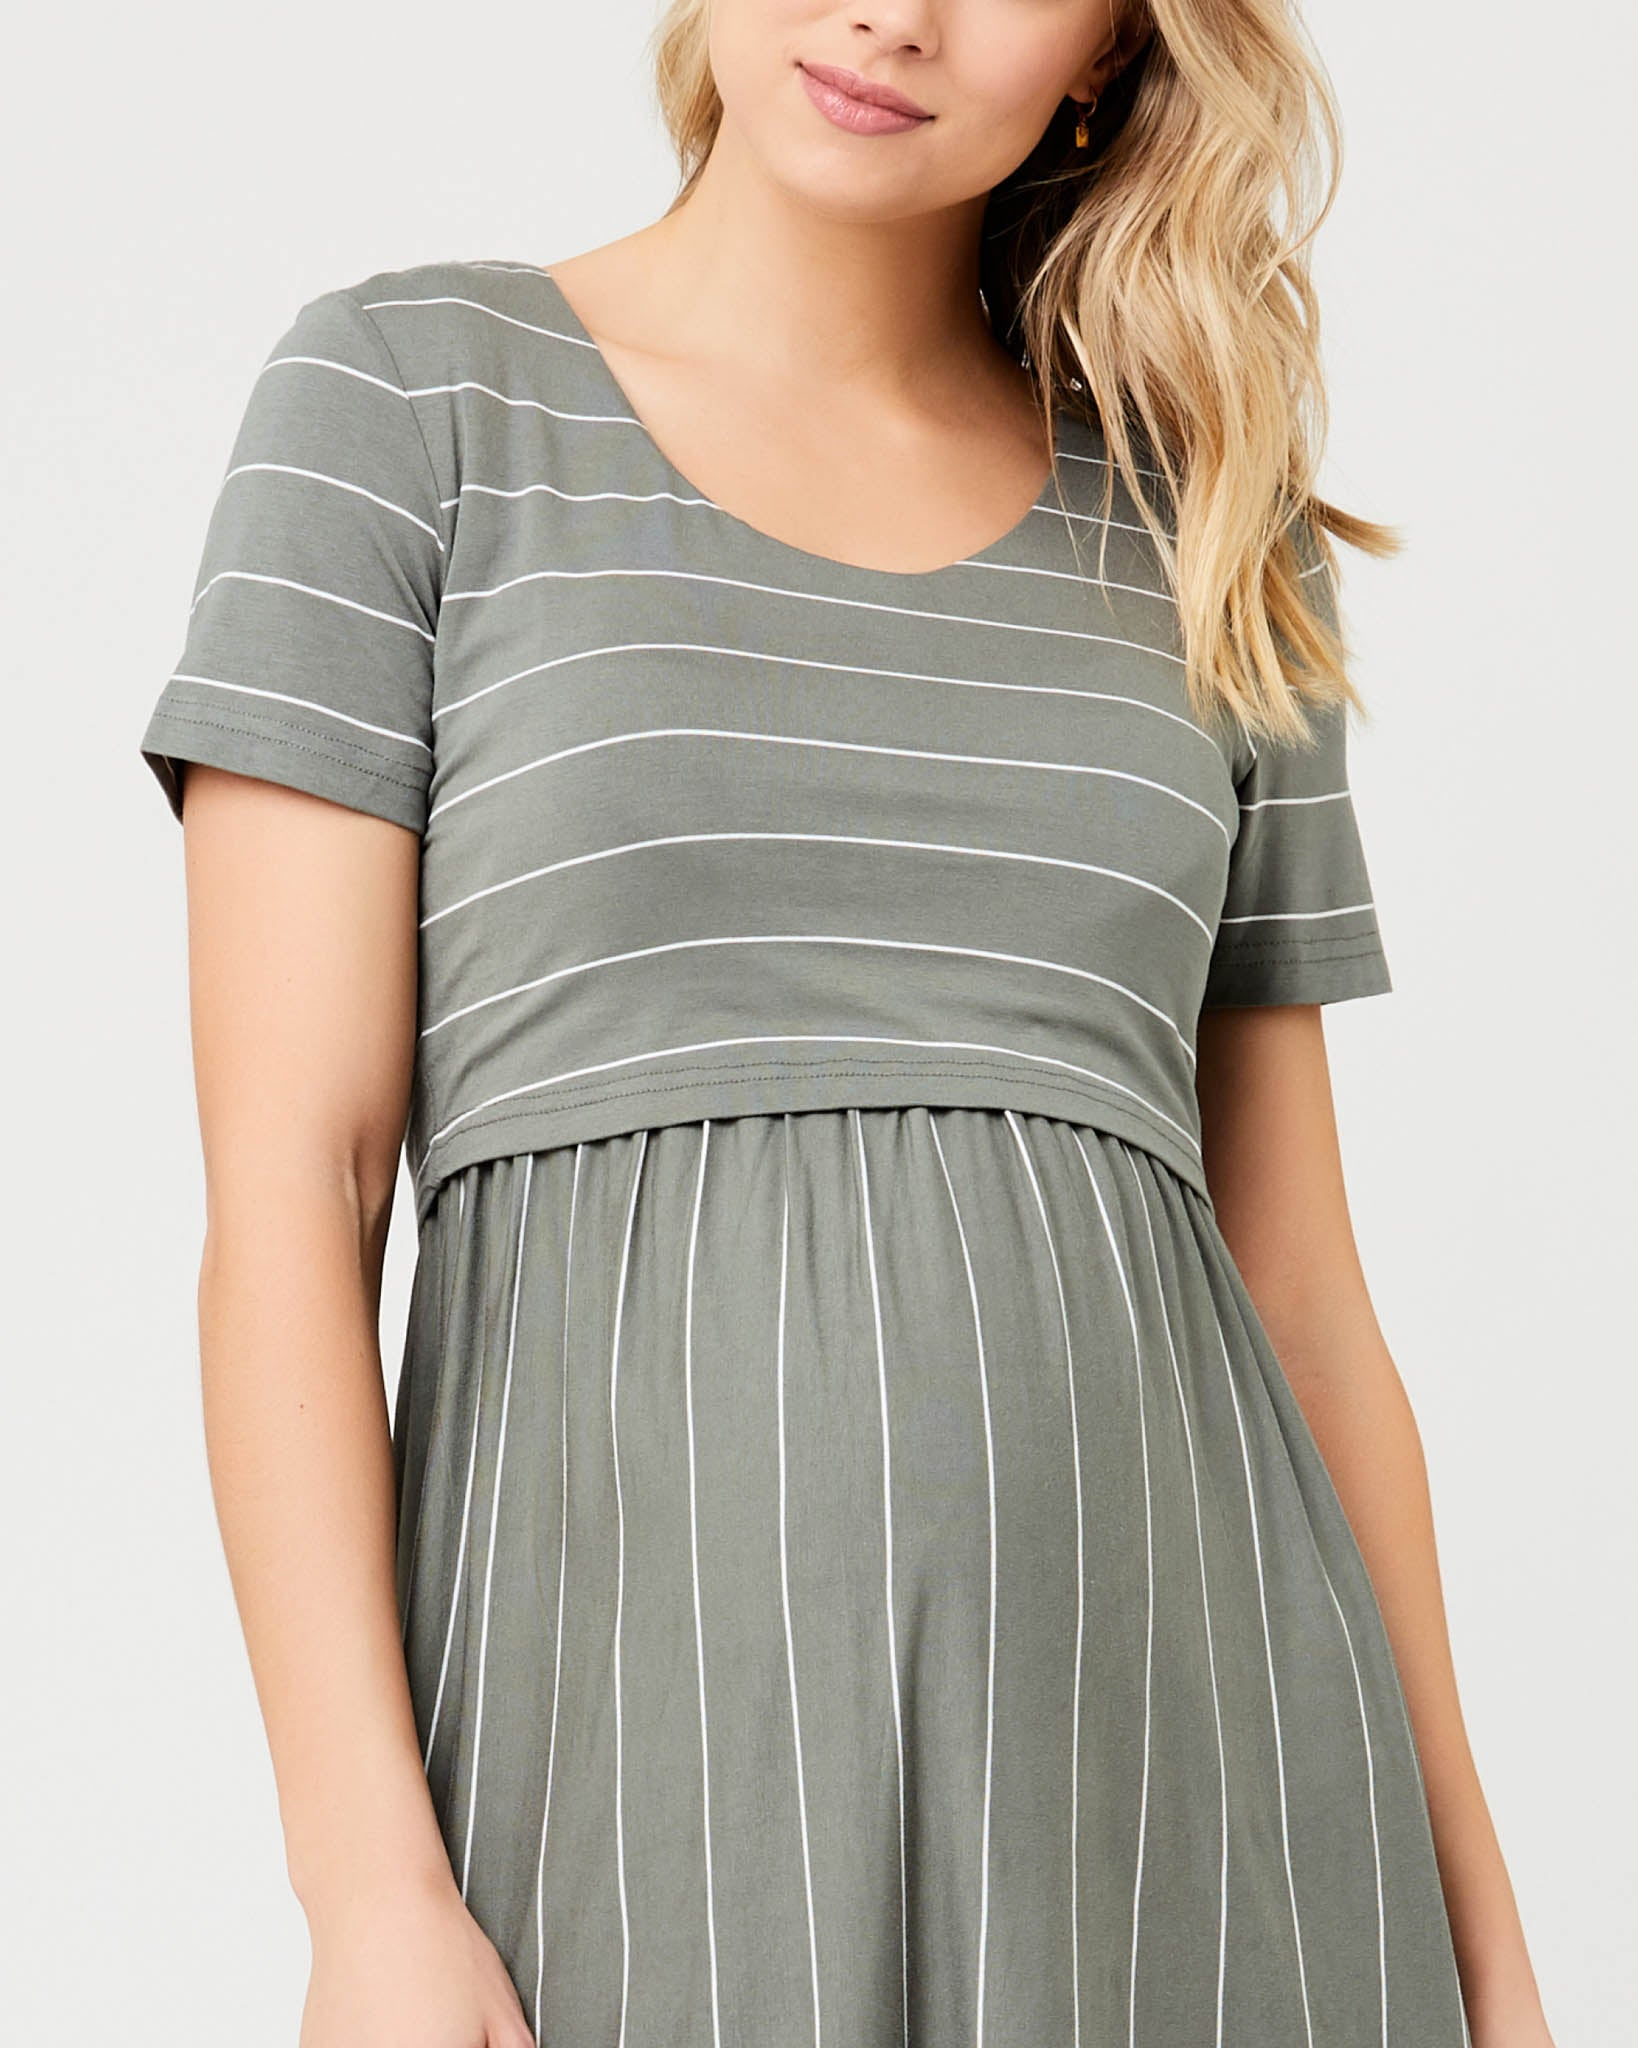 Ripe Maternity Crop Top Nursing Dress - Olive